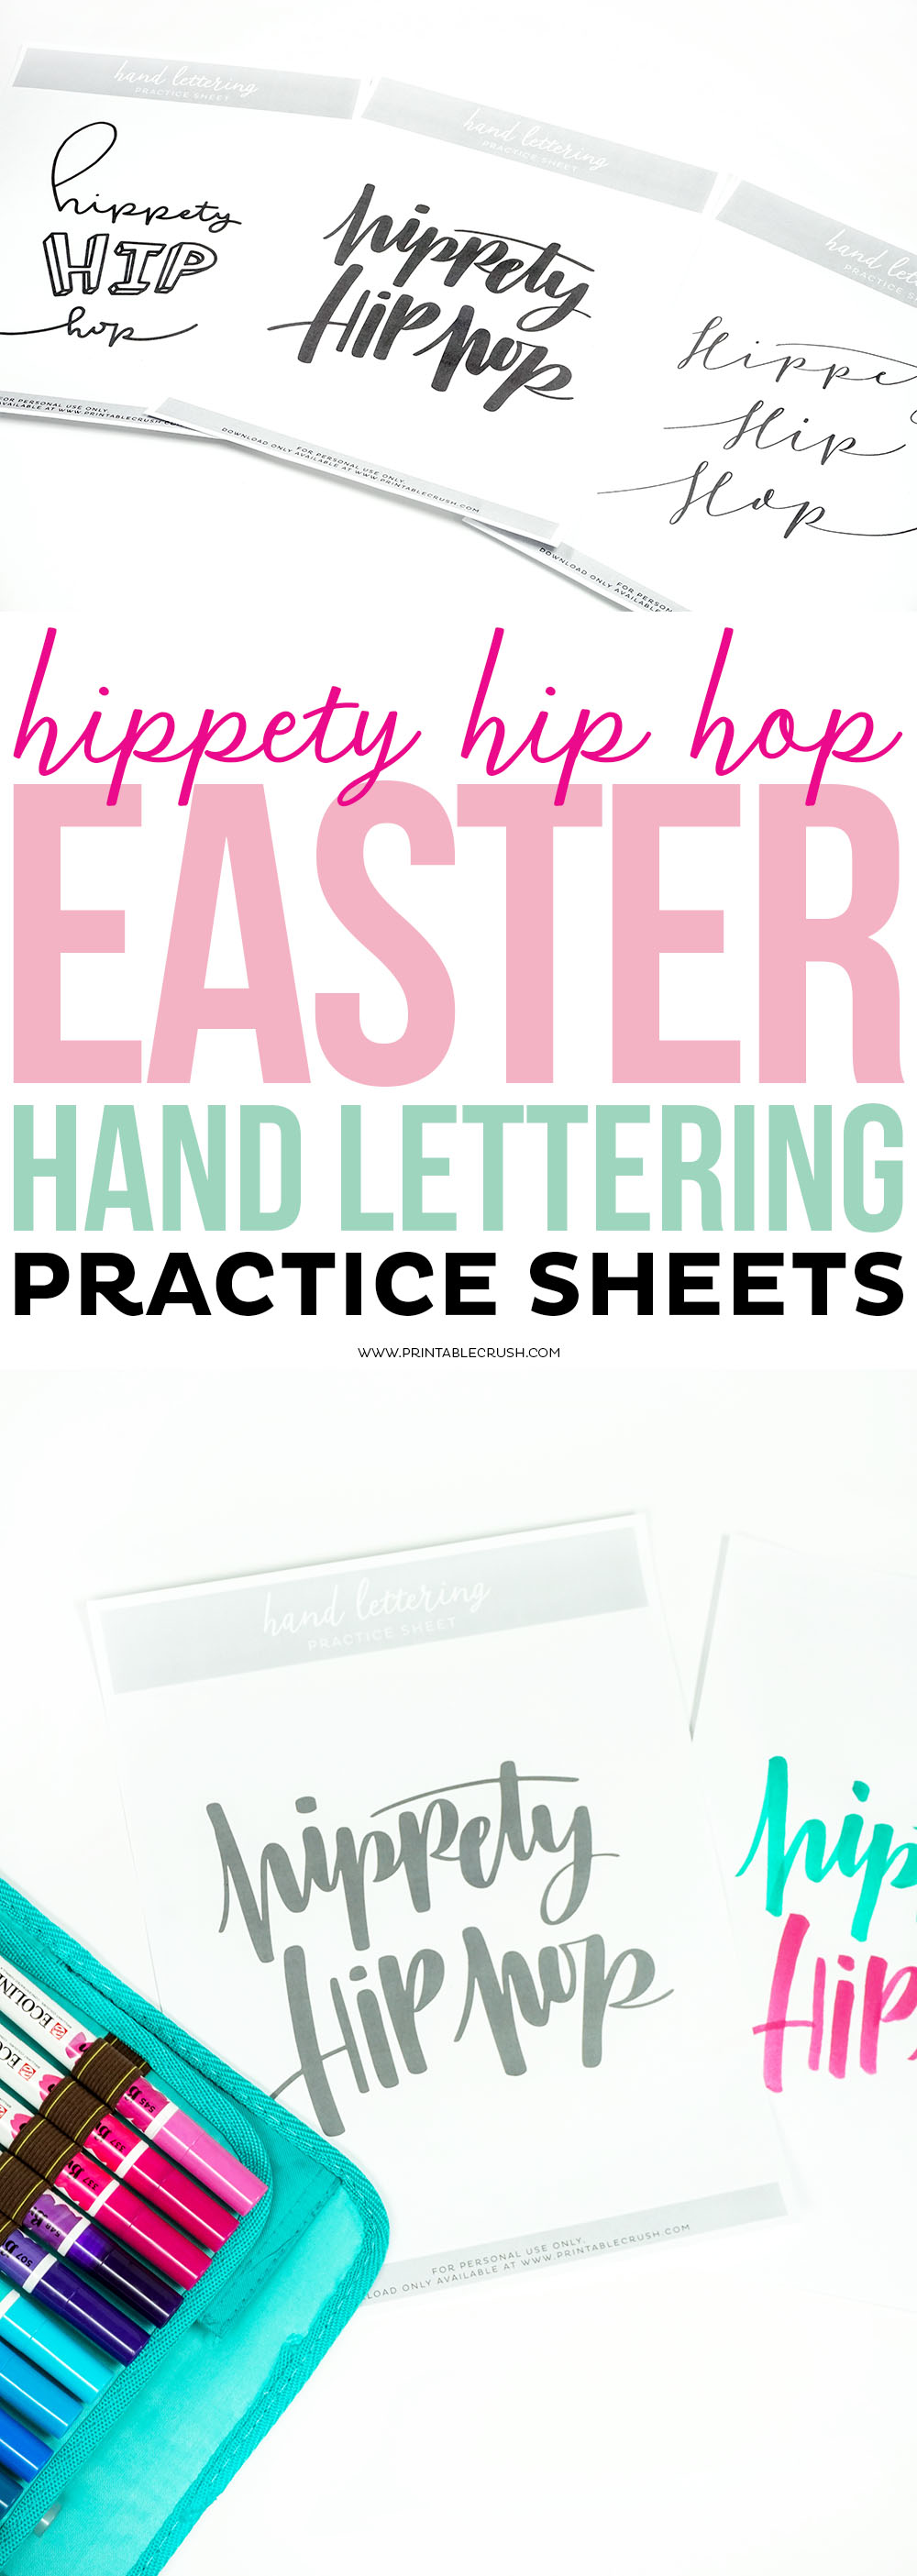 Download these Hand lettering Practice Sheets to create original art for Easter!